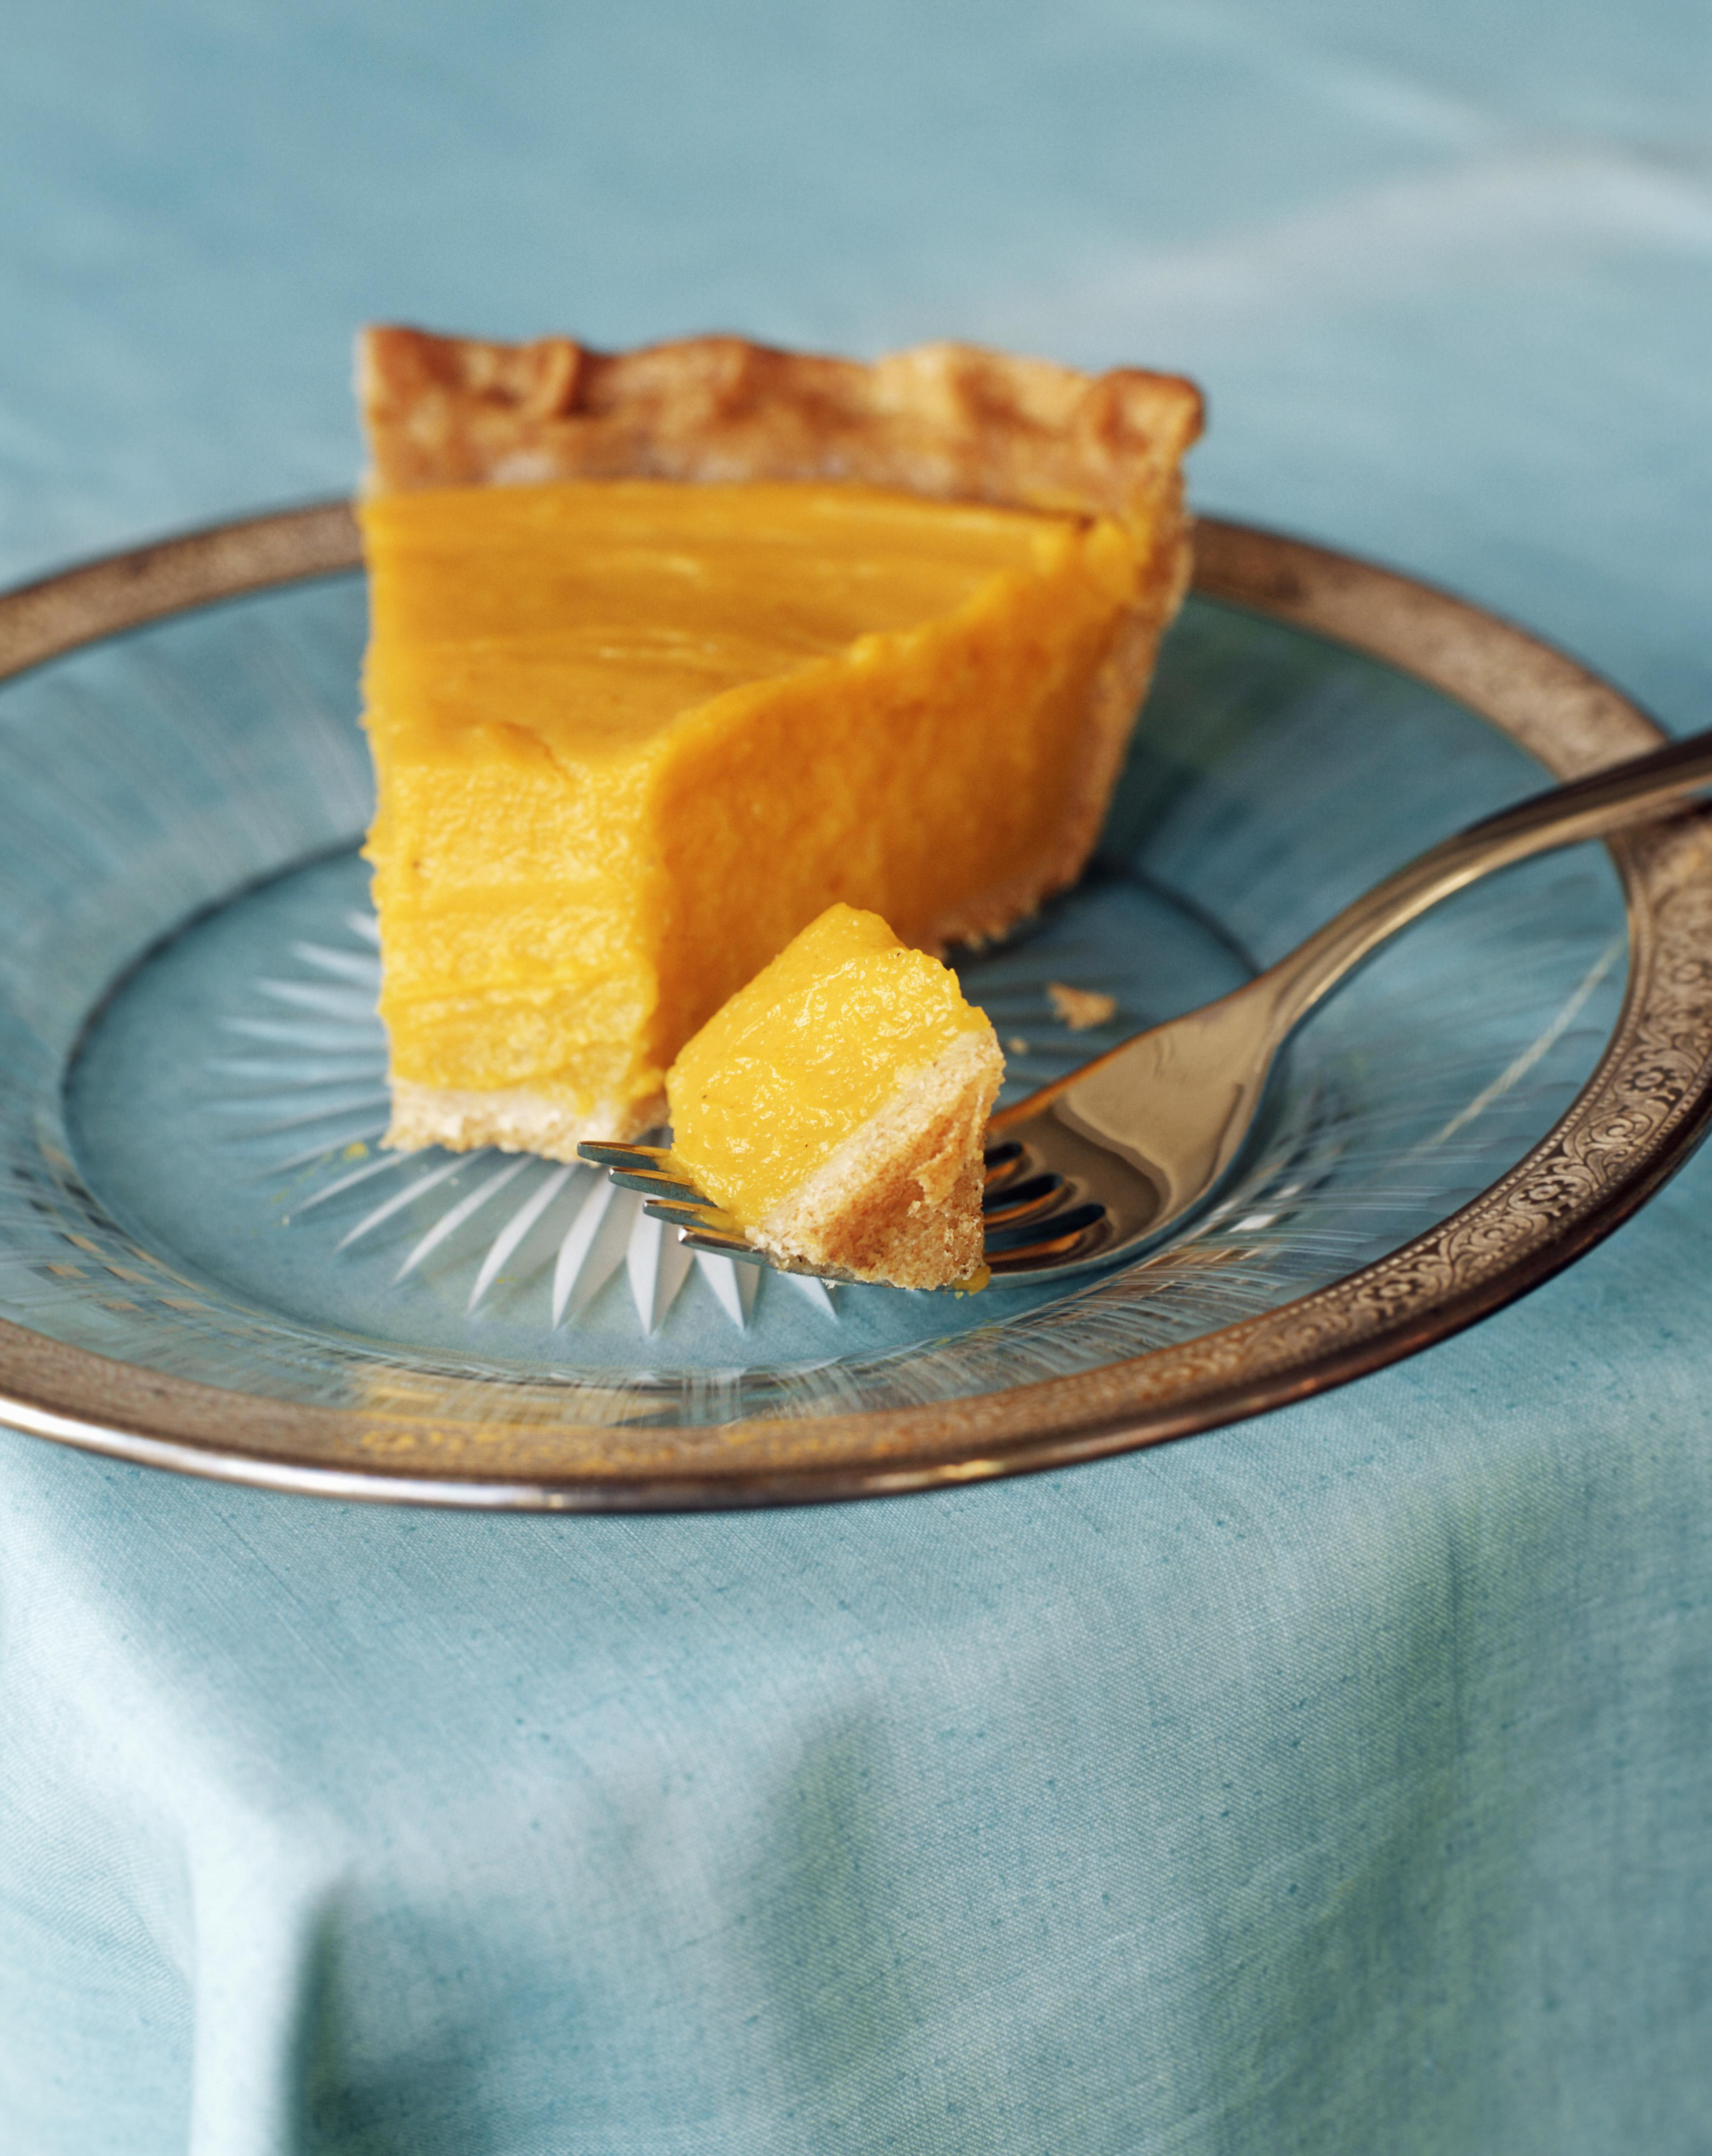 Slice of pumpkin pie with piece on fork, close-up